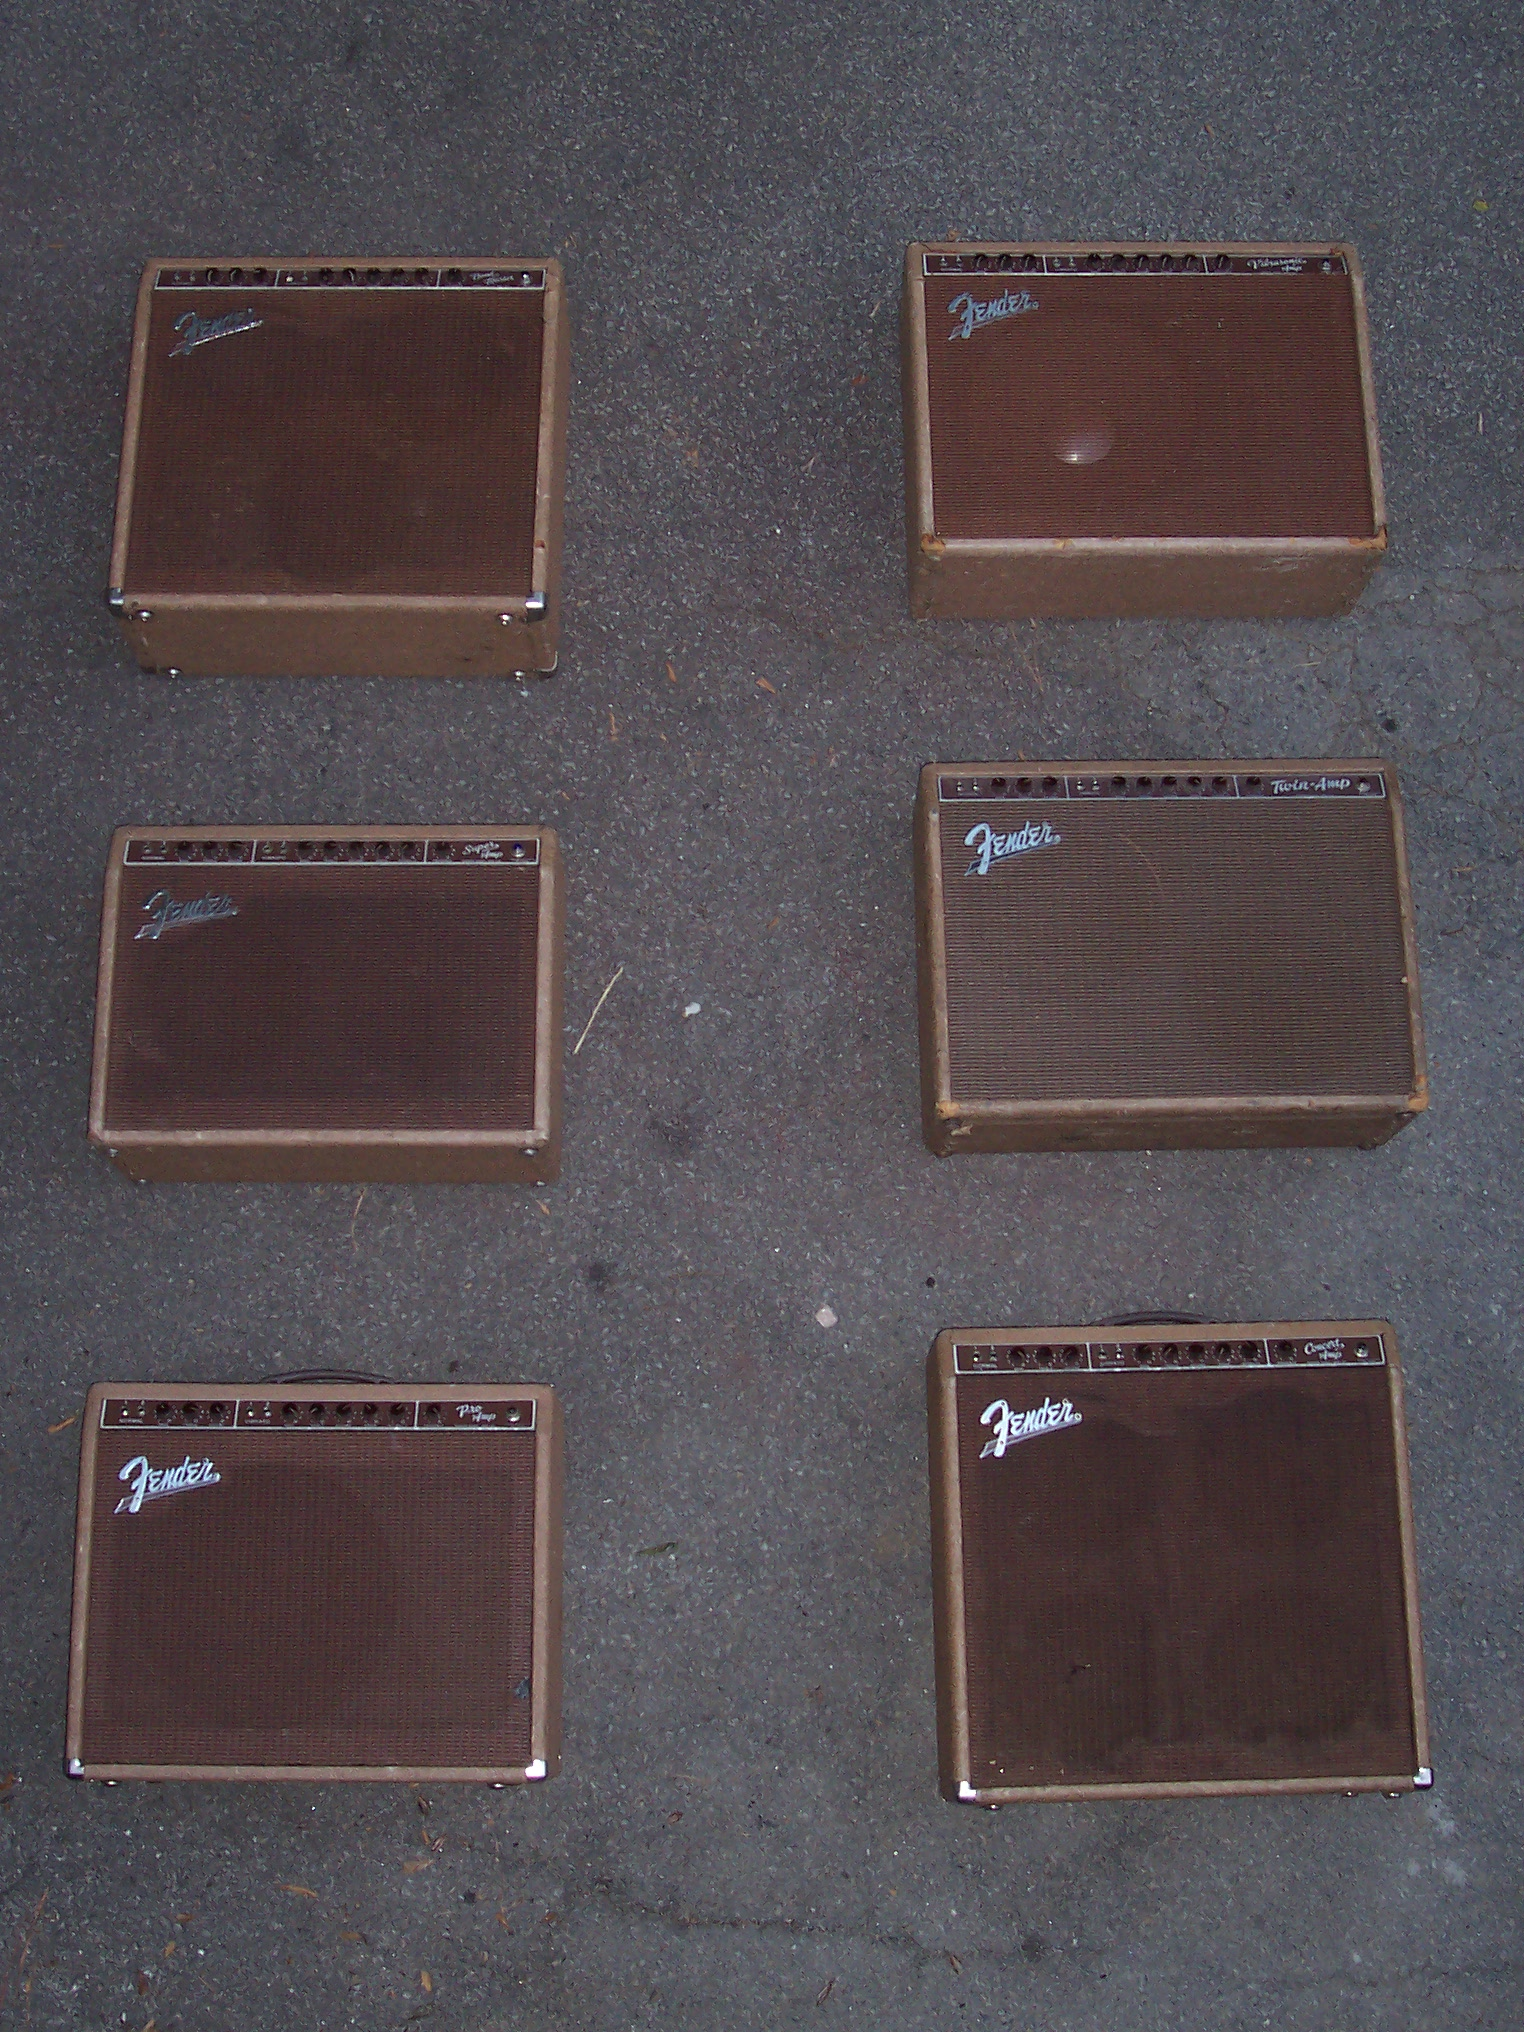 Heres A Group Photo Shot Of Six The Brown Era Professional Series Centervolume Ie Bass Treble Volume Fender Combo Amps All From 1960